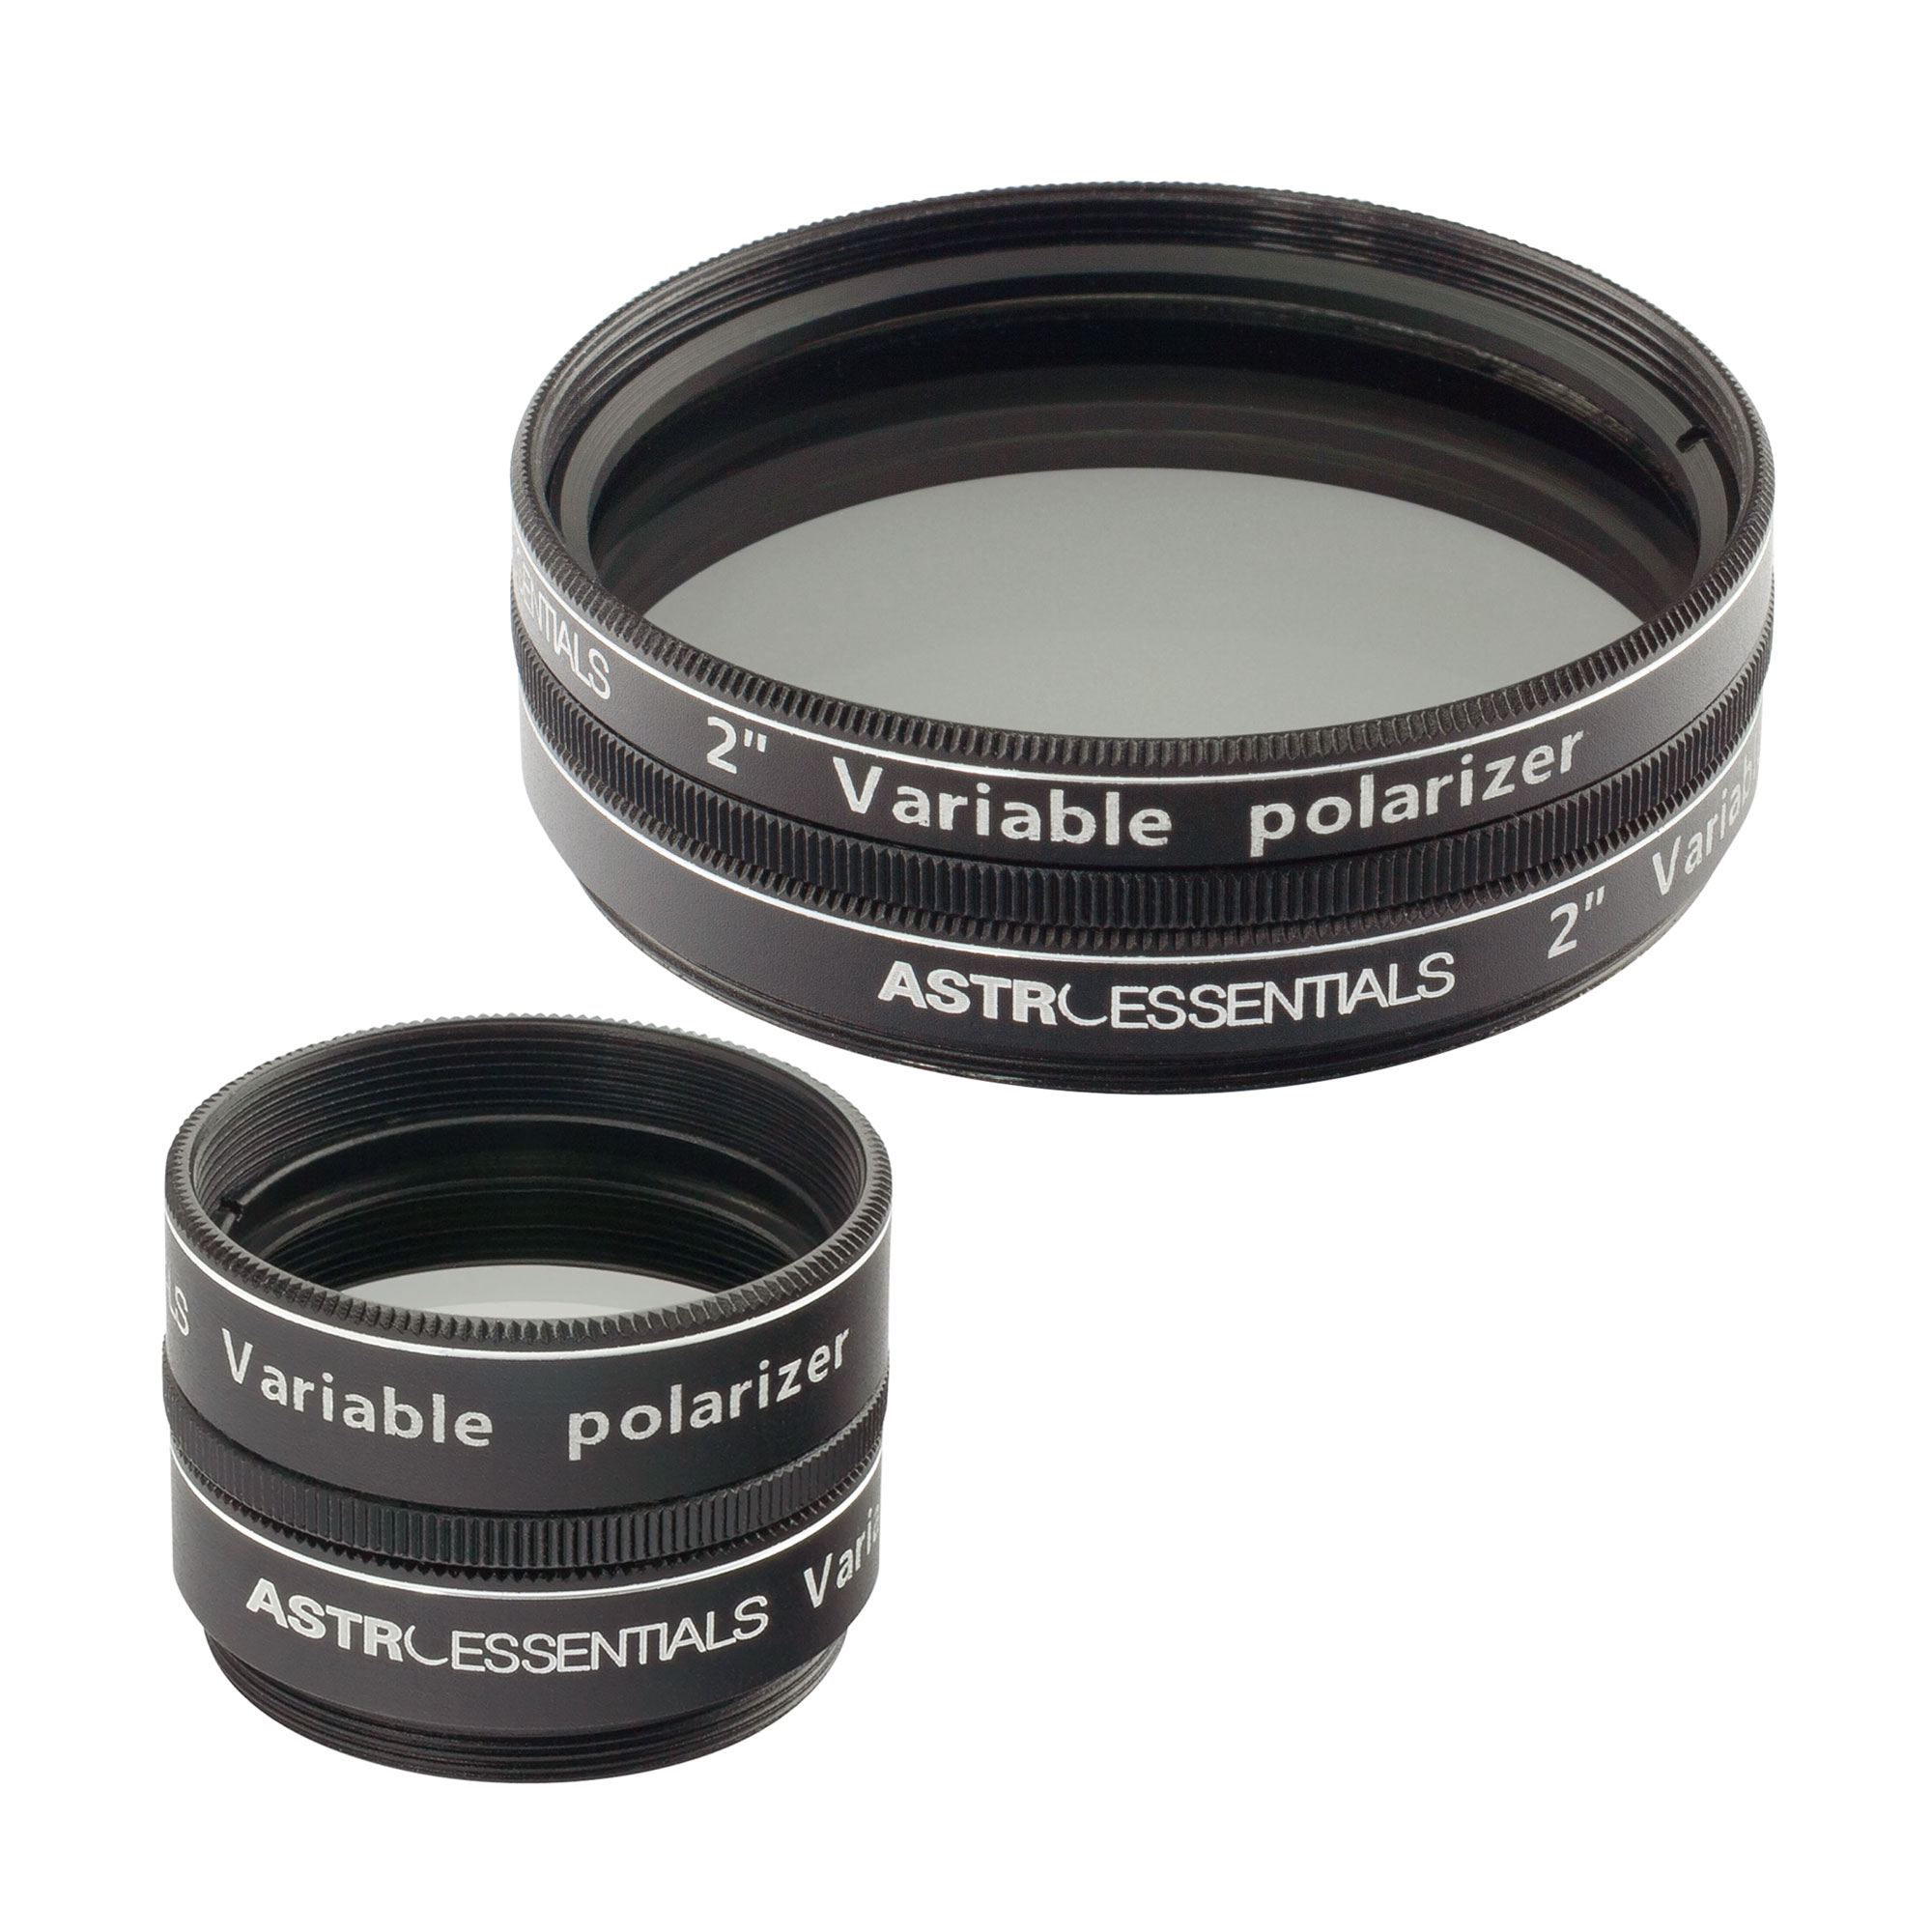 Astro Essentials Variable Polarising Moon Filter